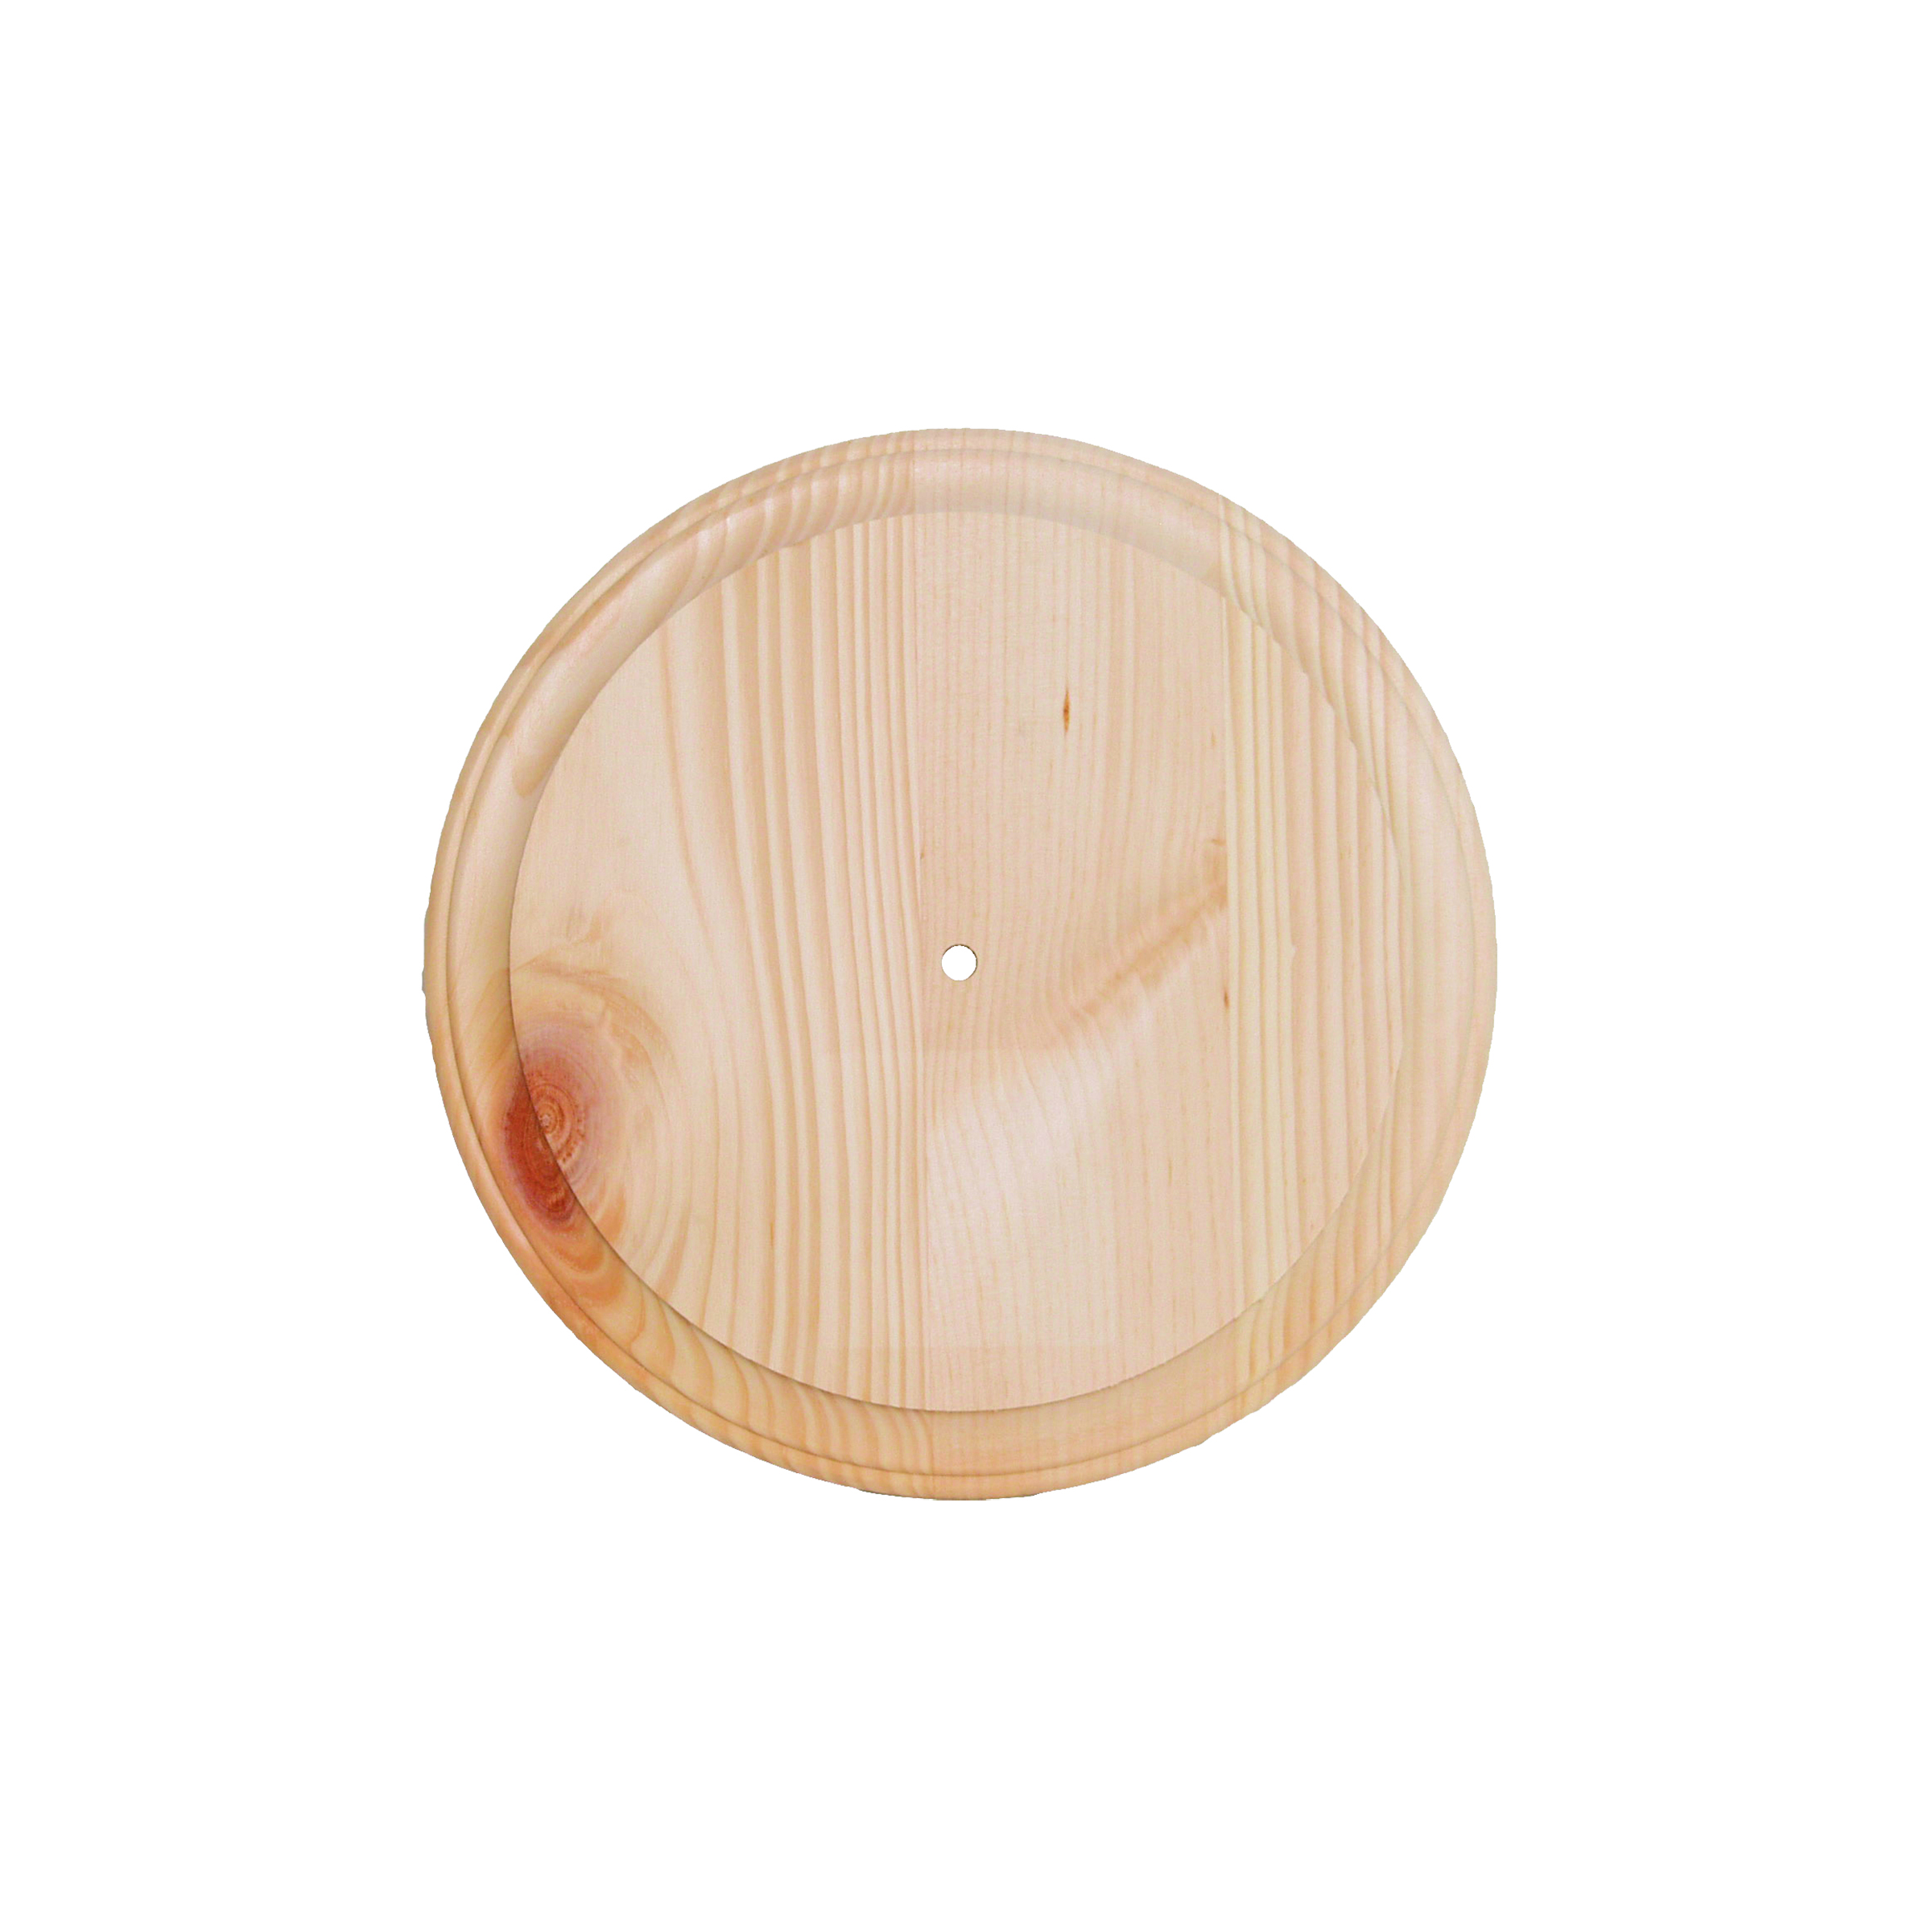 Clock making wooden clock kits supplies joann pine wood clock face 11 round use 700p800p movements amipublicfo Gallery